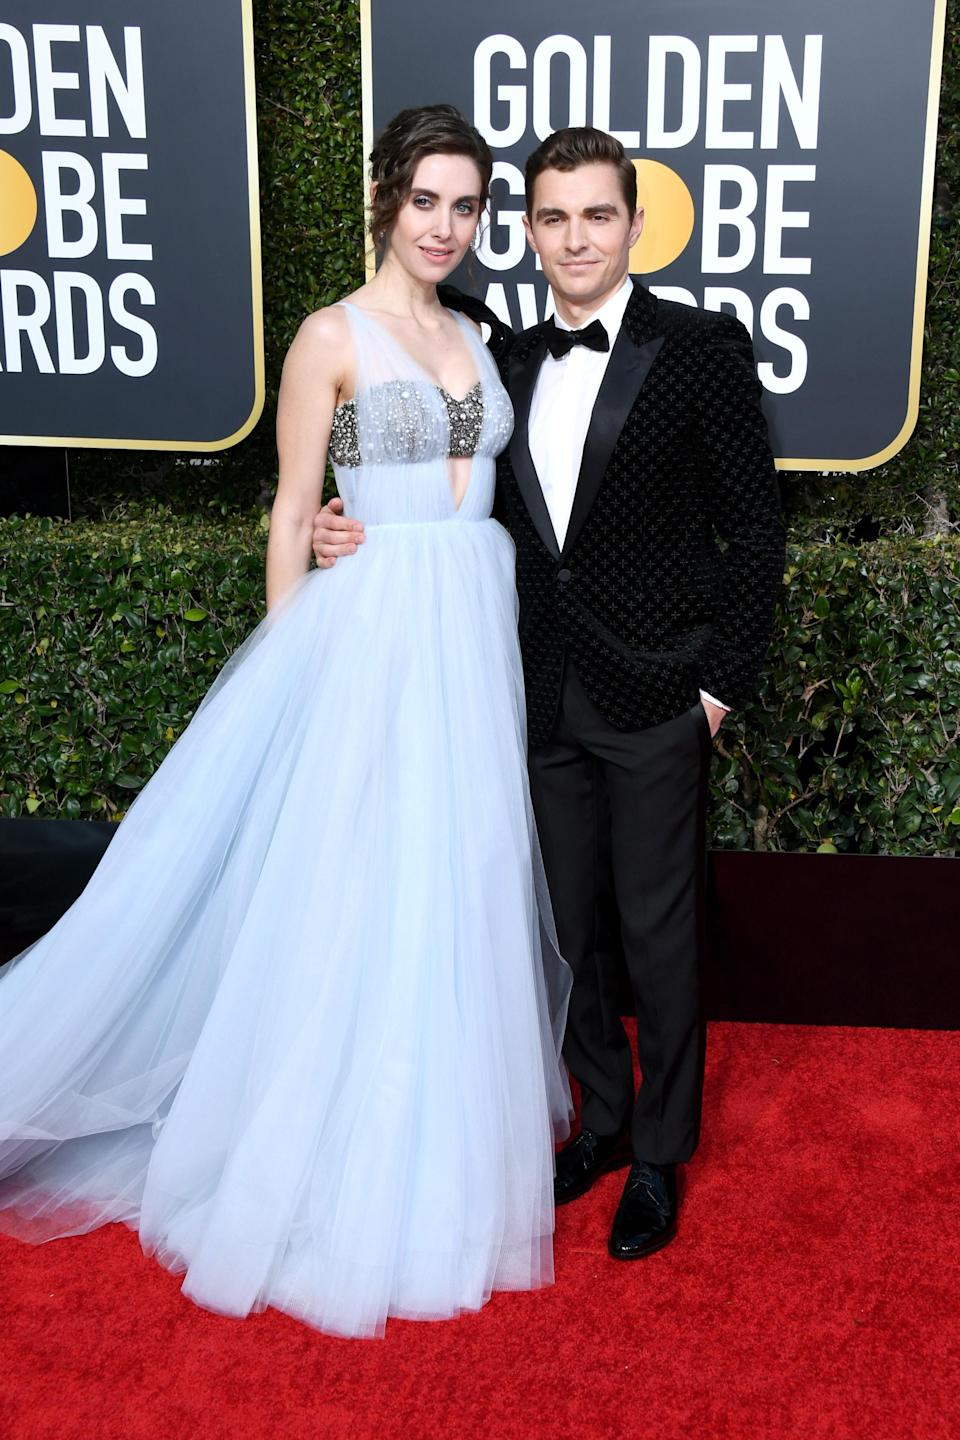 <p>Alison Brie and Dave Franco attend the 76th Annual Golden Globe Awards at the Beverly Hilton Hotel in Beverly Hills, Calif., on Jan. 6, 2019. (Photo: Getty Images) </p>